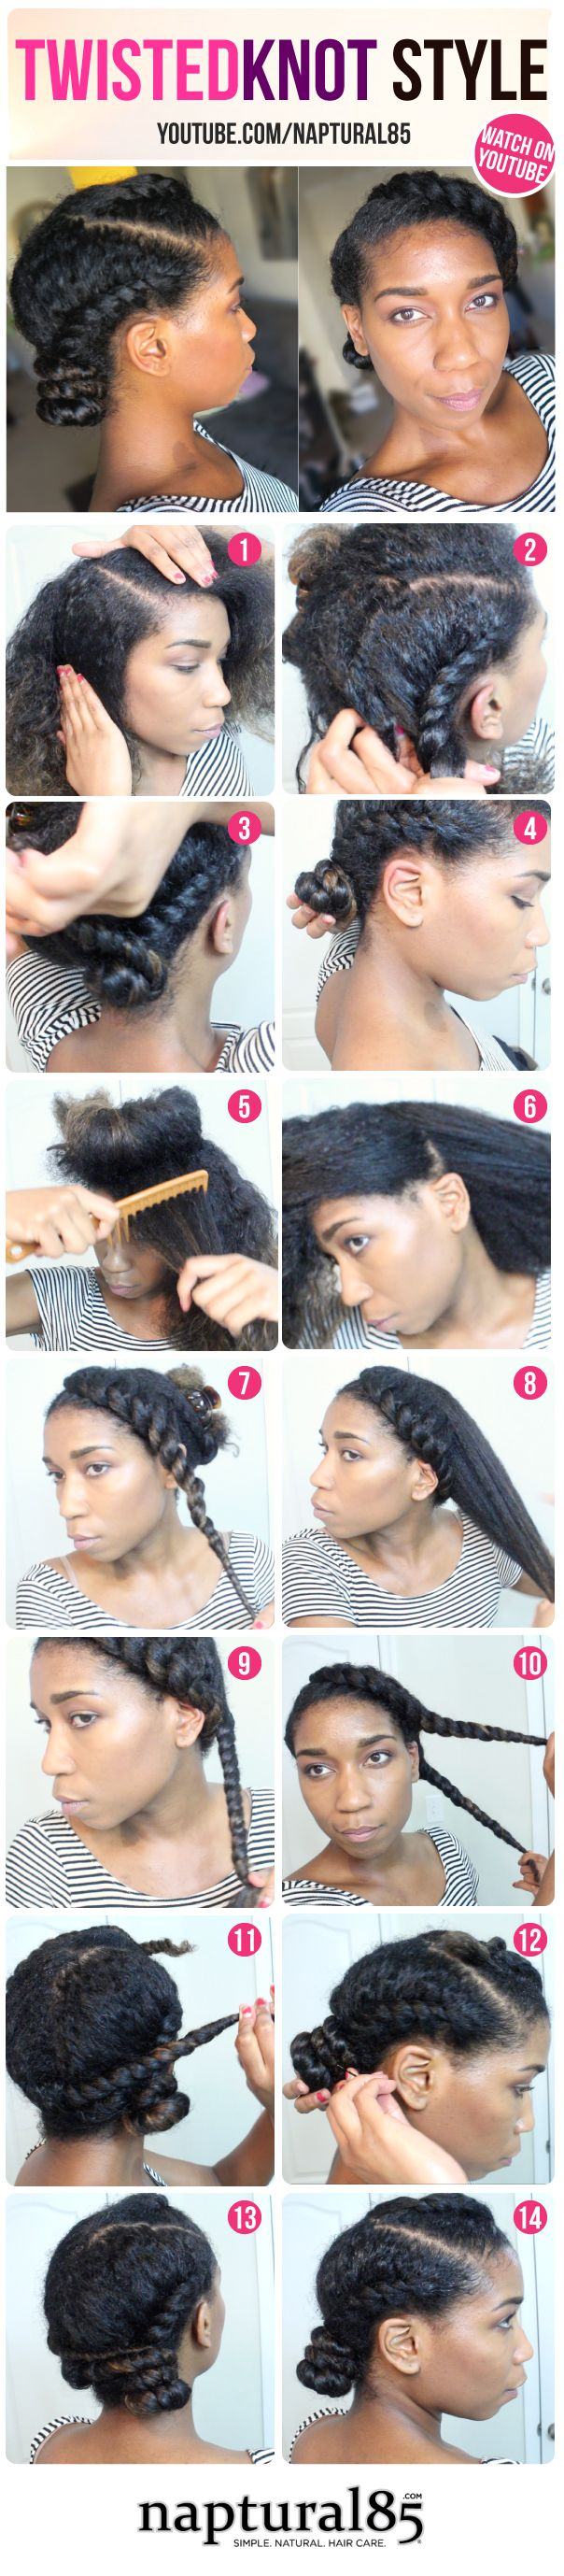 ManeGuru.com| Natural Hairstyles: Bantu Knots, Afros, Twist outs, Protective Styles | Visit ManeGuru.com for more!